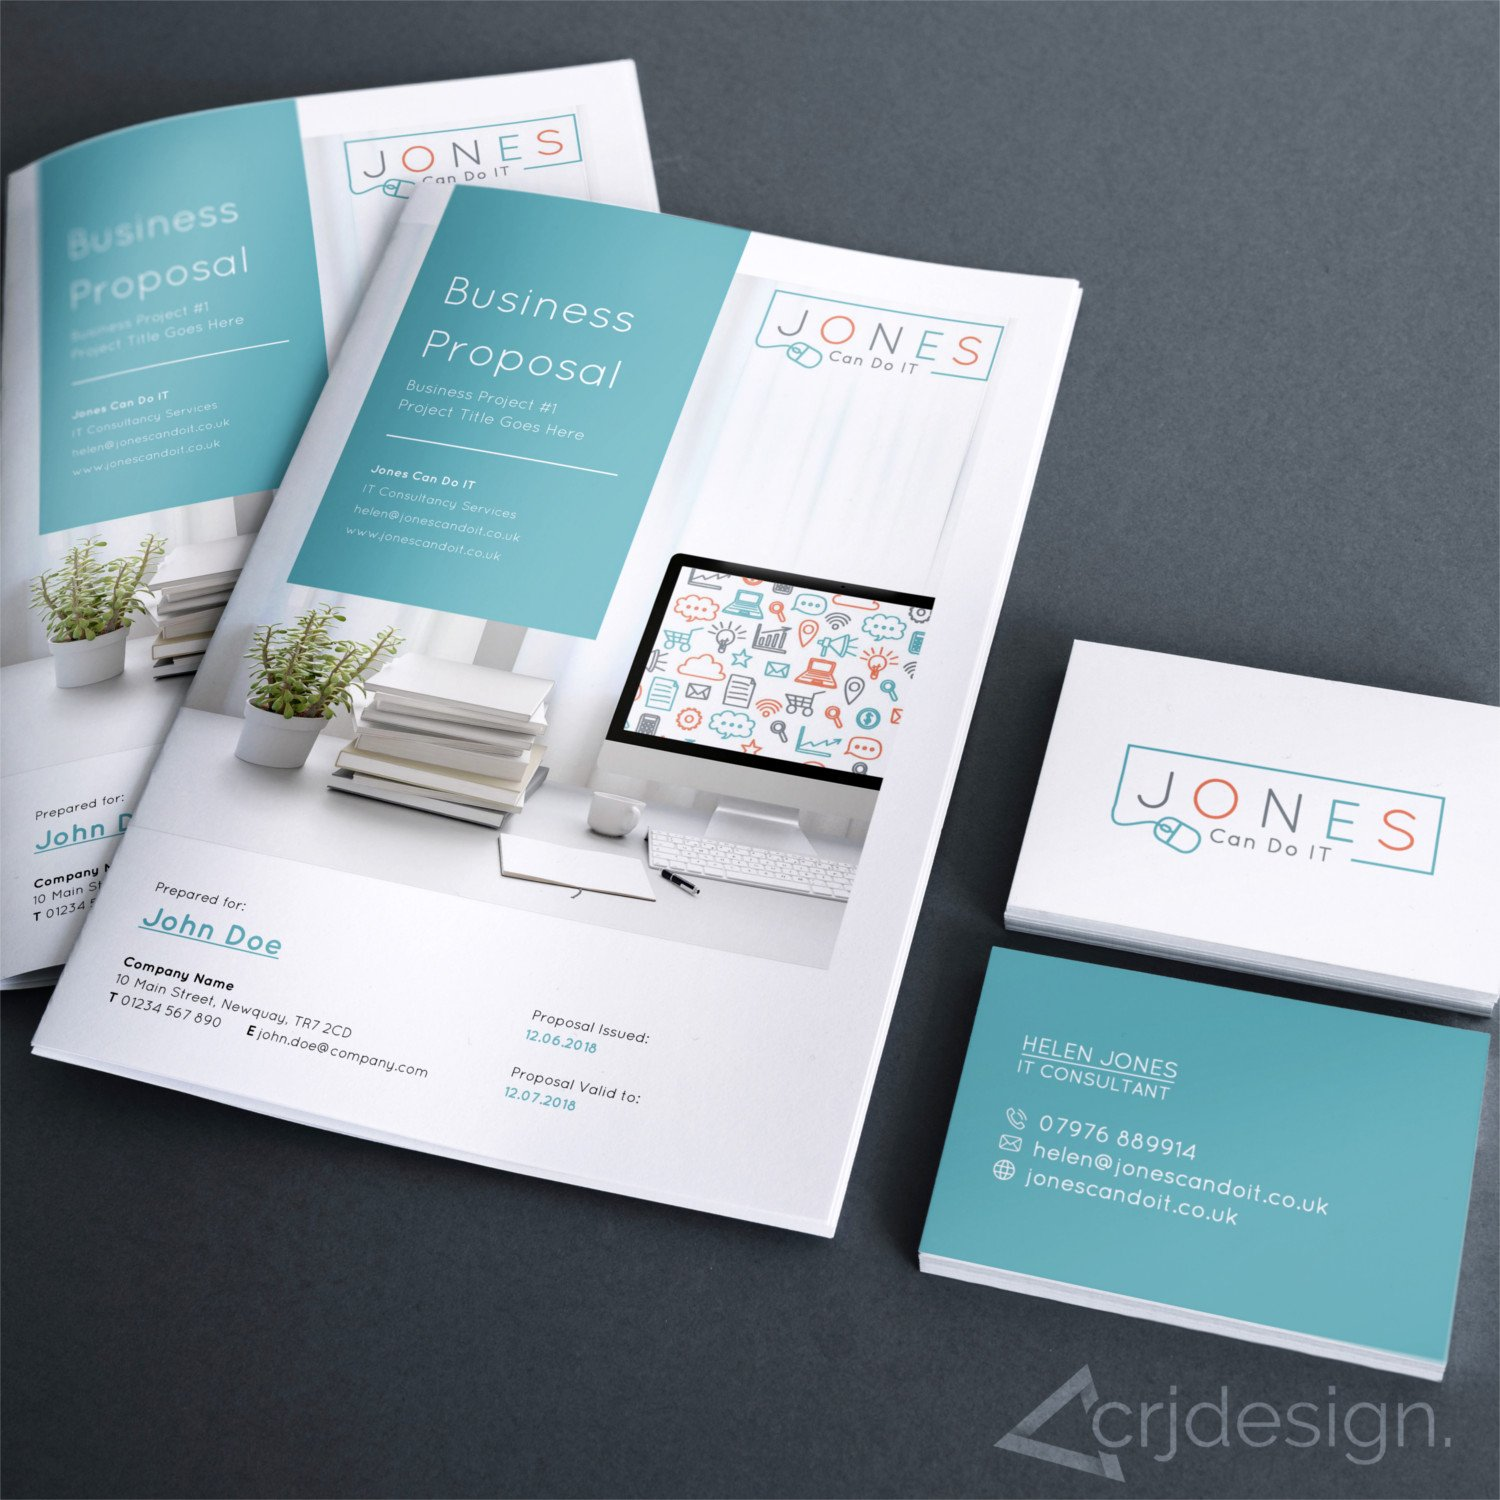 Jones Can Do IT Consultant Newquay Branding Logo Business Cards Stationery by CRJ Design